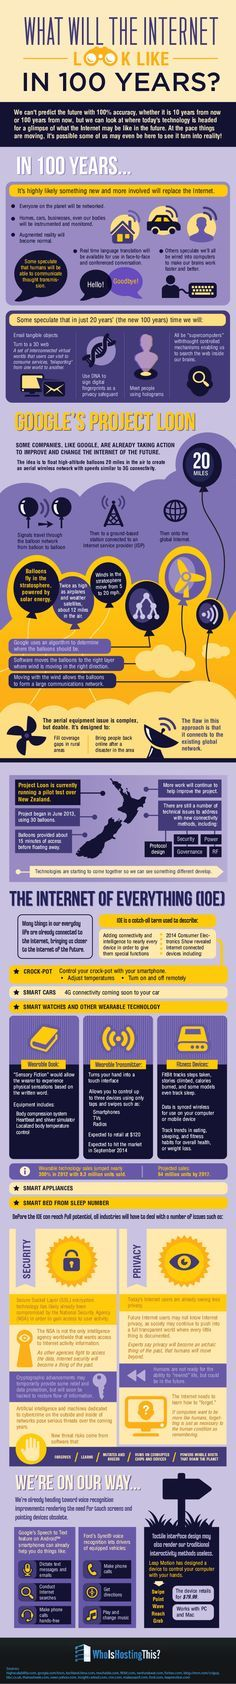 What Will The Internet Look Like In 100 Years - infographic [The Future of the Internet: http://futuristicnews.com/tag/internet/ & http://futuristicshop.com/category/future_internet/]